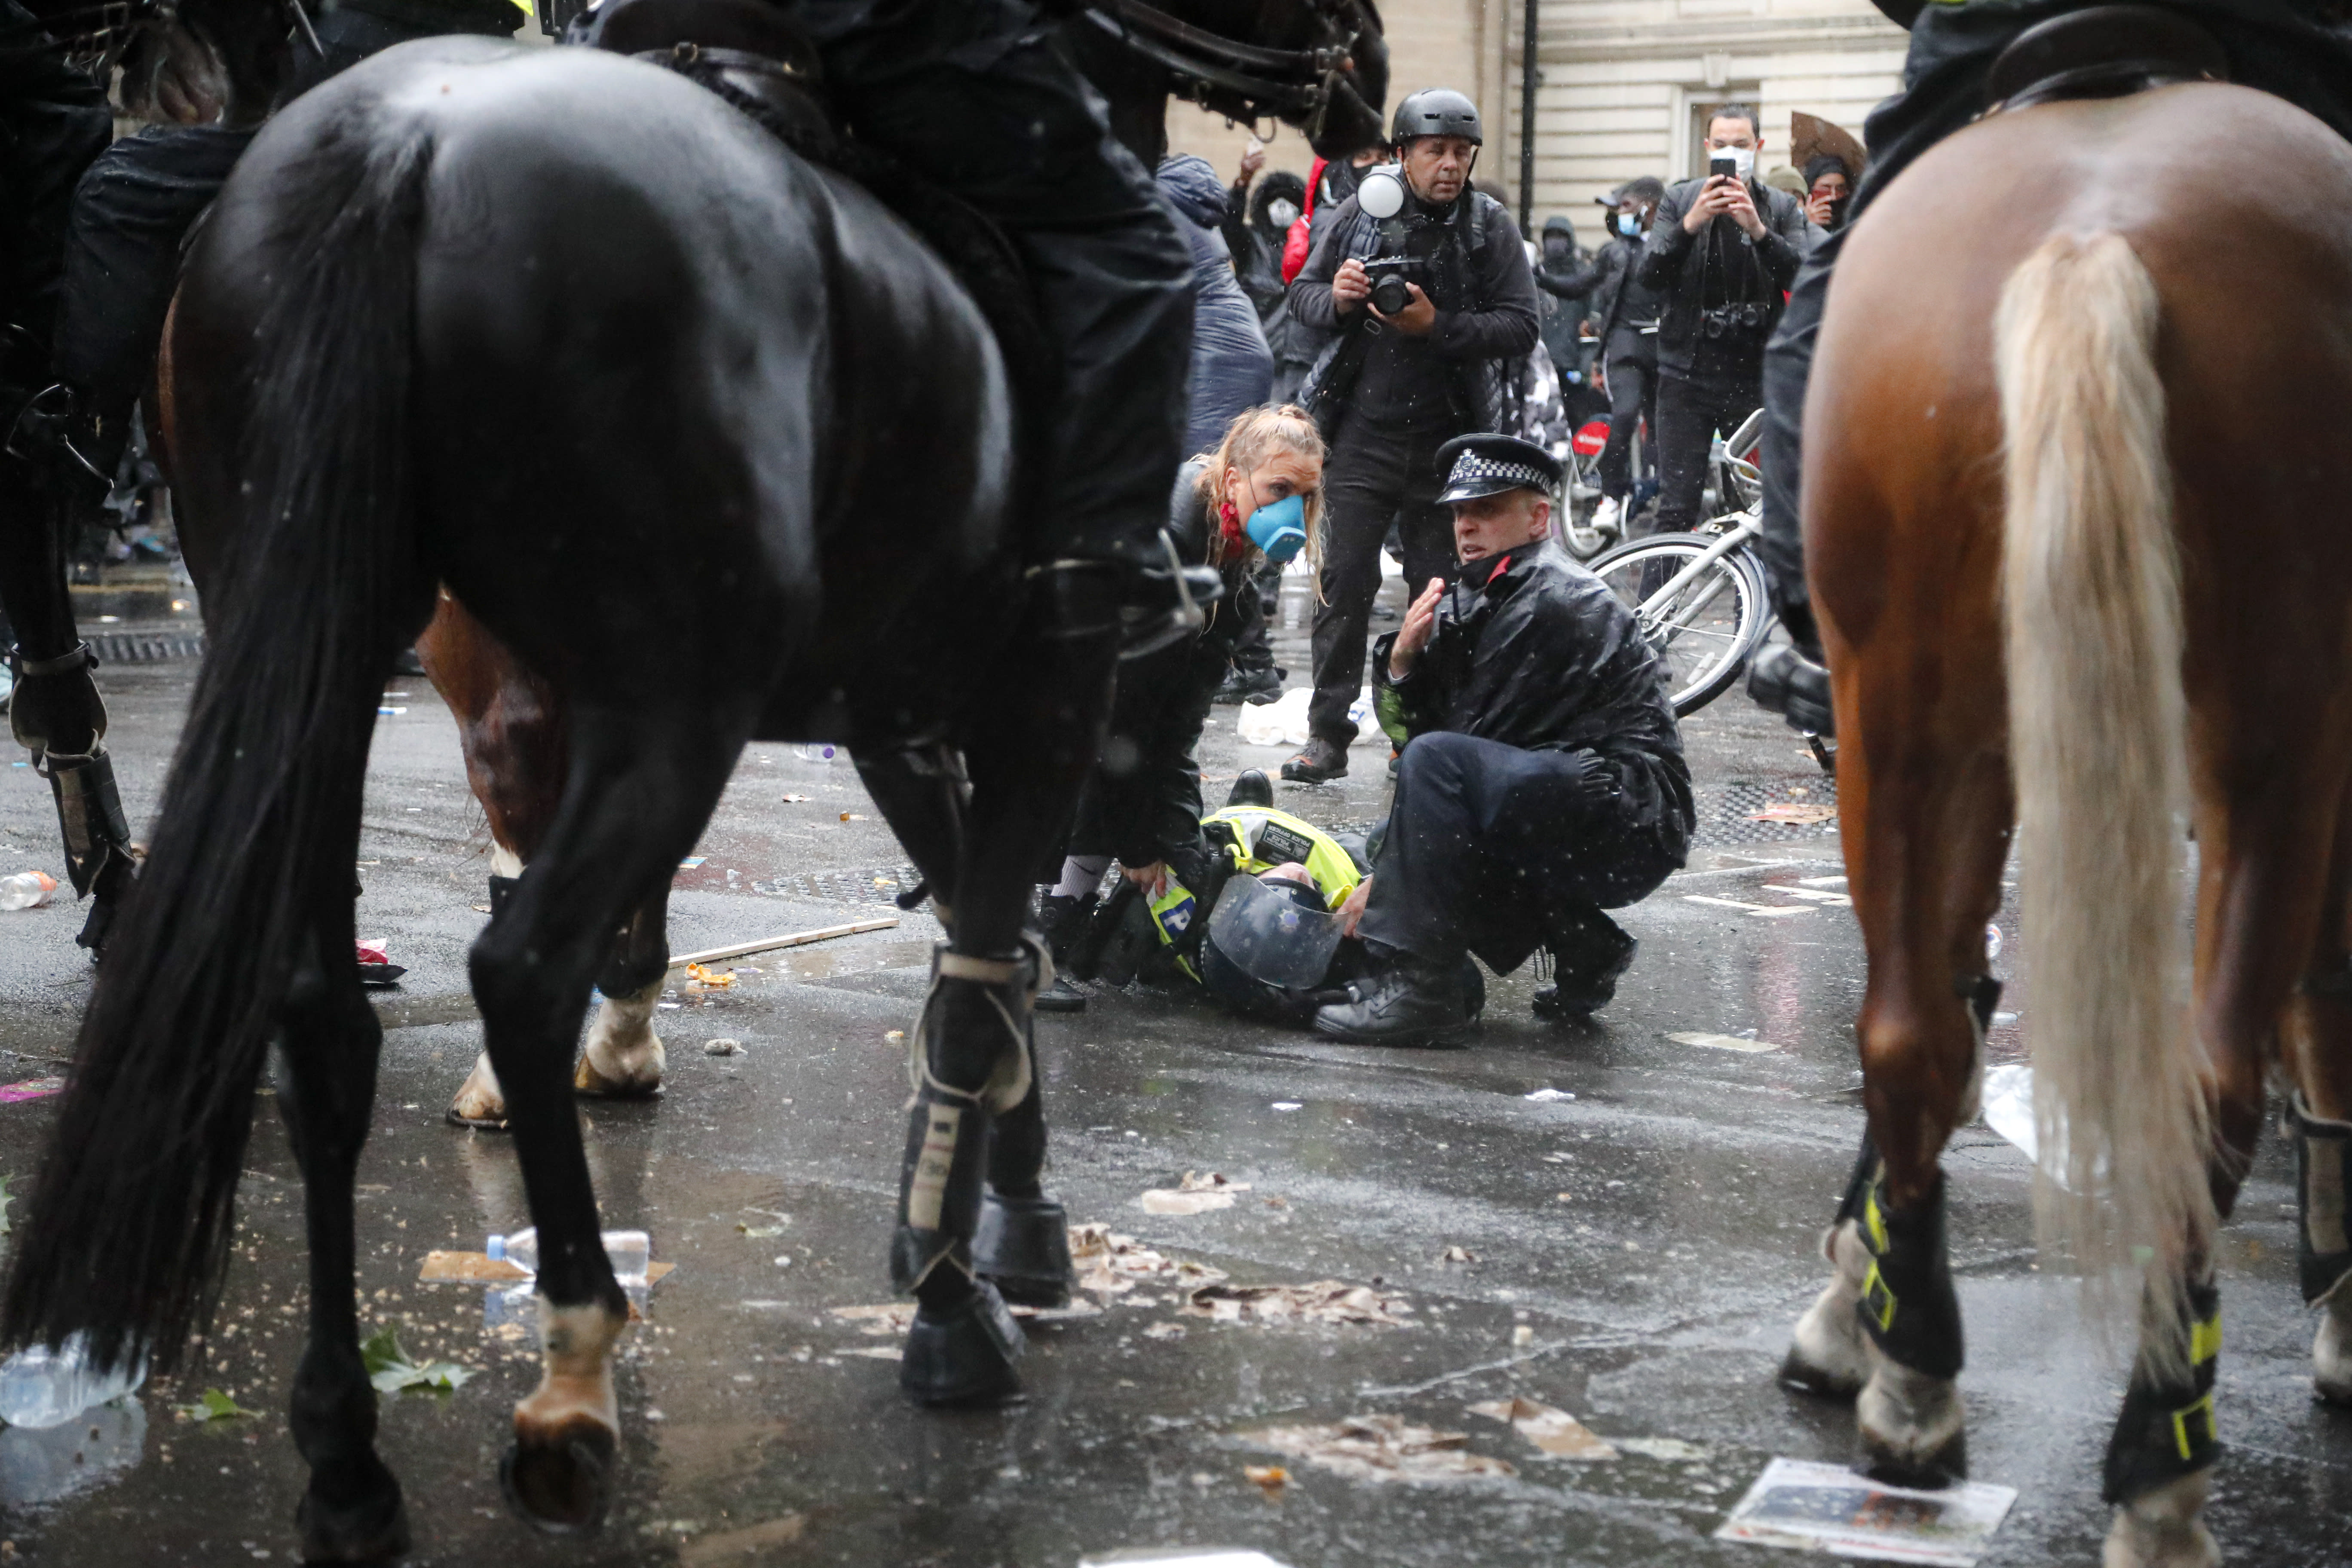 A colleague attends to a police officer who was injured when falling of a horse during scuffles with demonstrators at Downing Street during a Black Lives Matter march in London, Saturday, June 6, 2020, as people protest against the killing of George Floyd by police officers in Minneapolis, USA. Floyd, a black man, died after he was restrained by Minneapolis police while in custody on May 25 in Minnesota. (AP Photo/Frank Augstein)